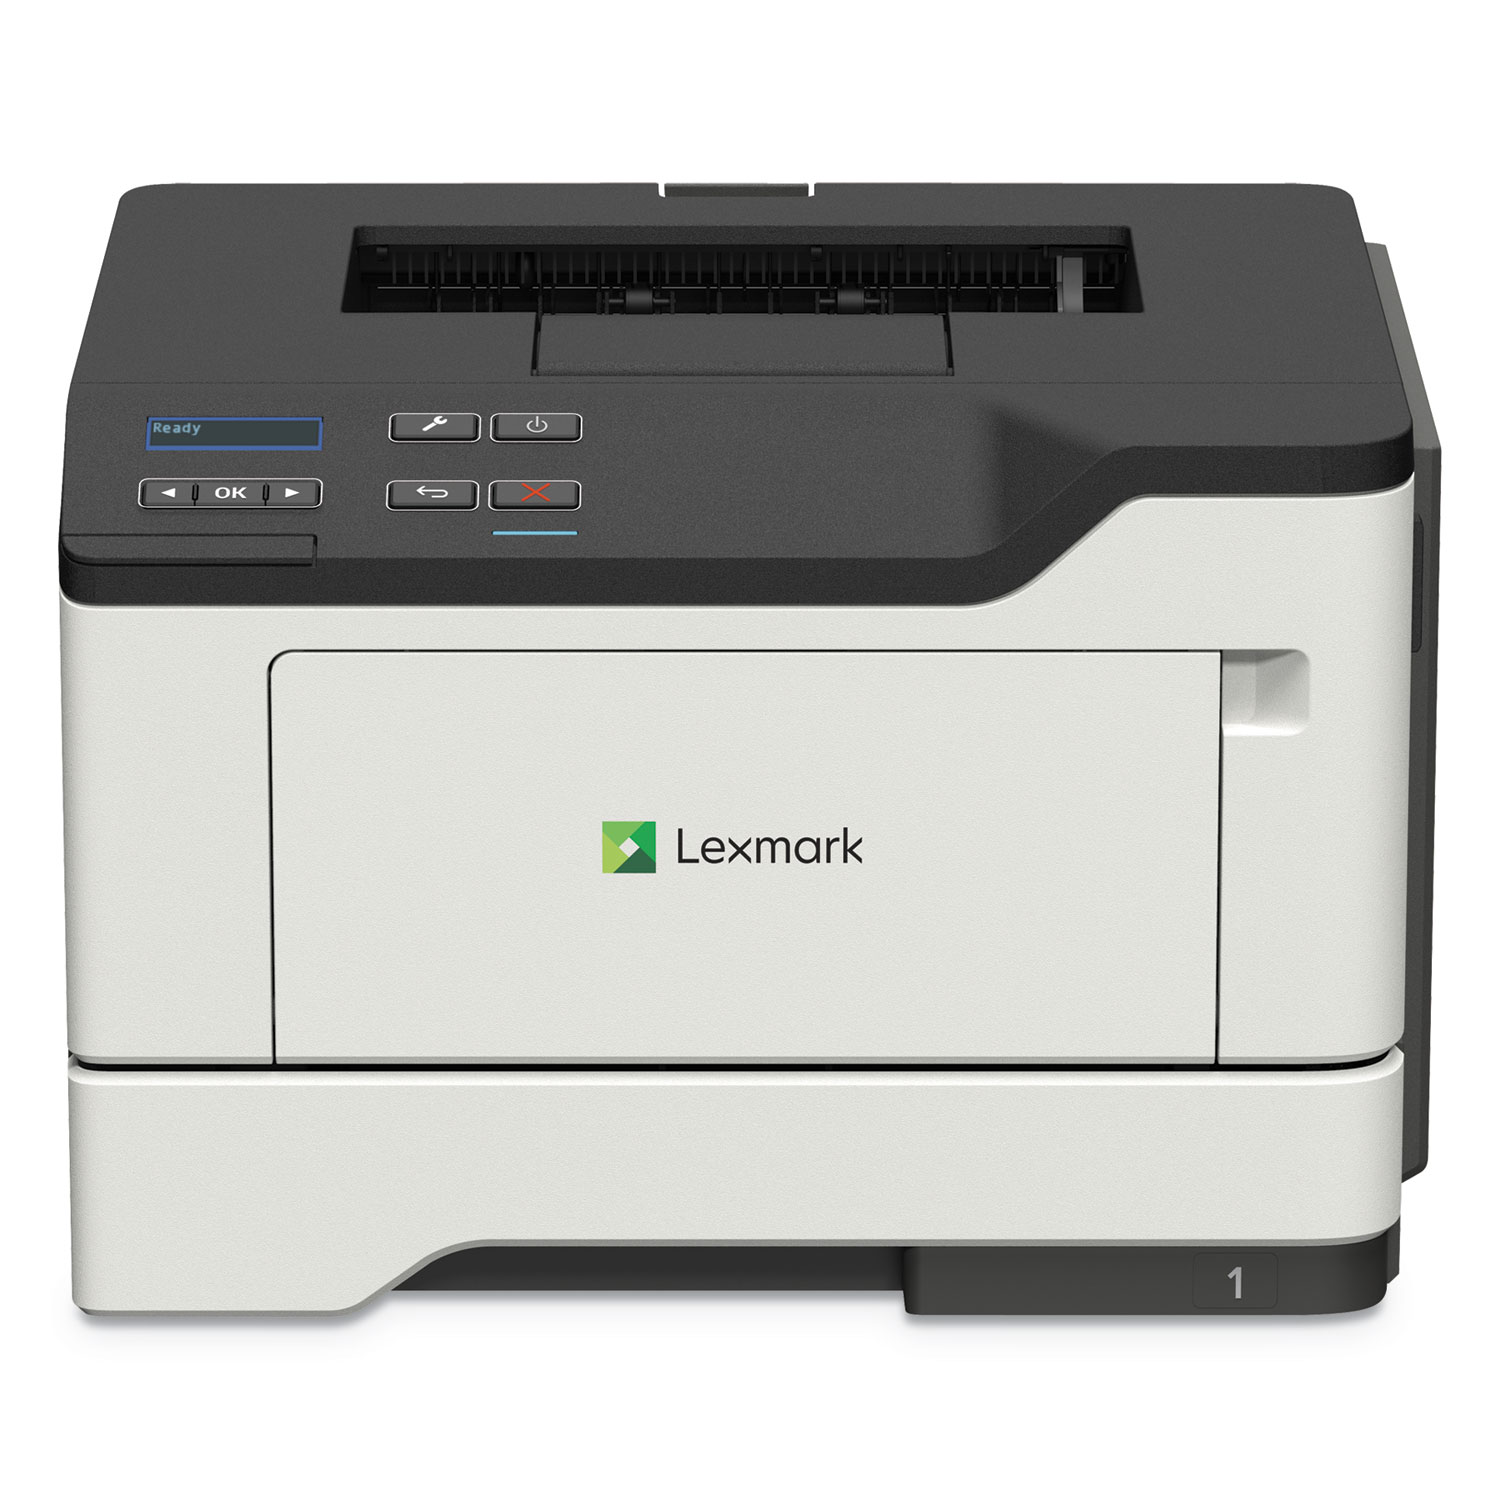 B2338dw Wireless Laser Printer